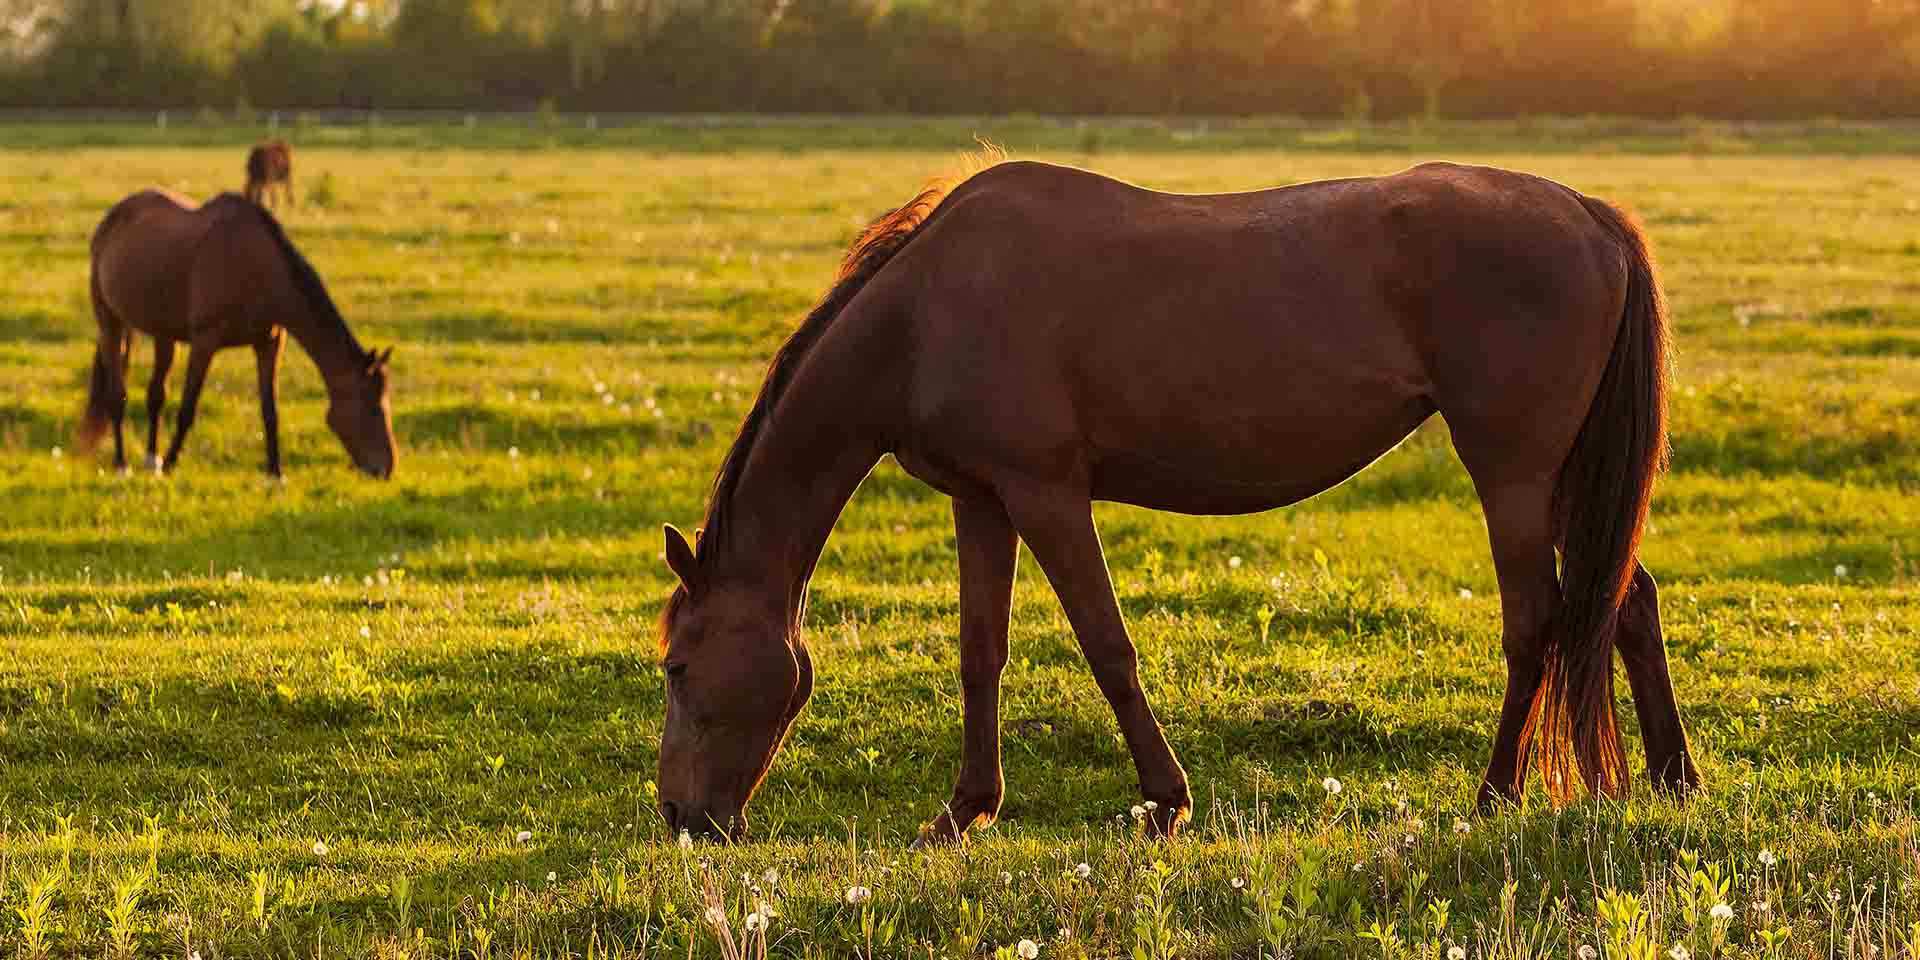 What Makes Ocala the Horse Capital of the World?